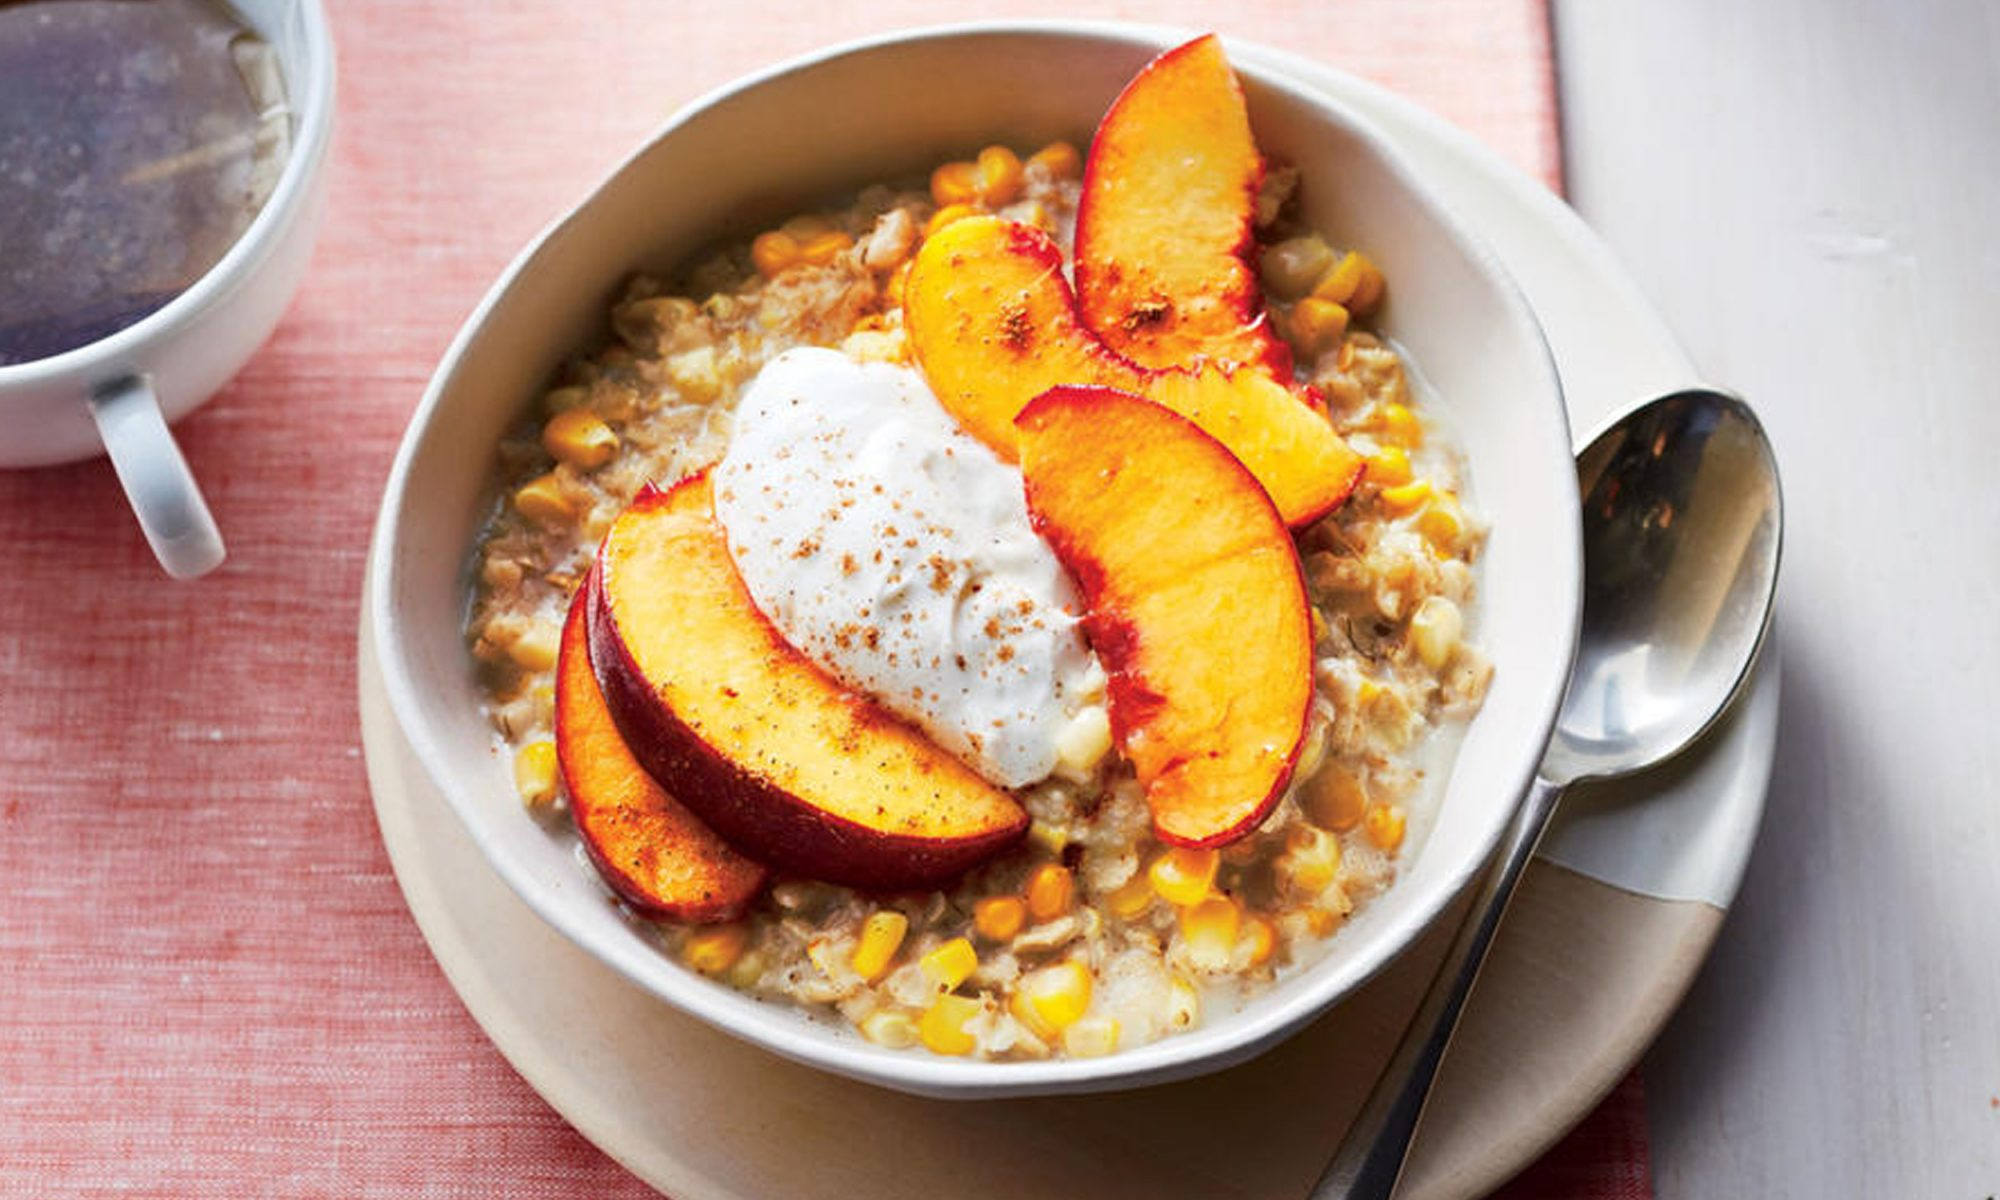 EC: Sweet Corn Oatmeal with Peaches